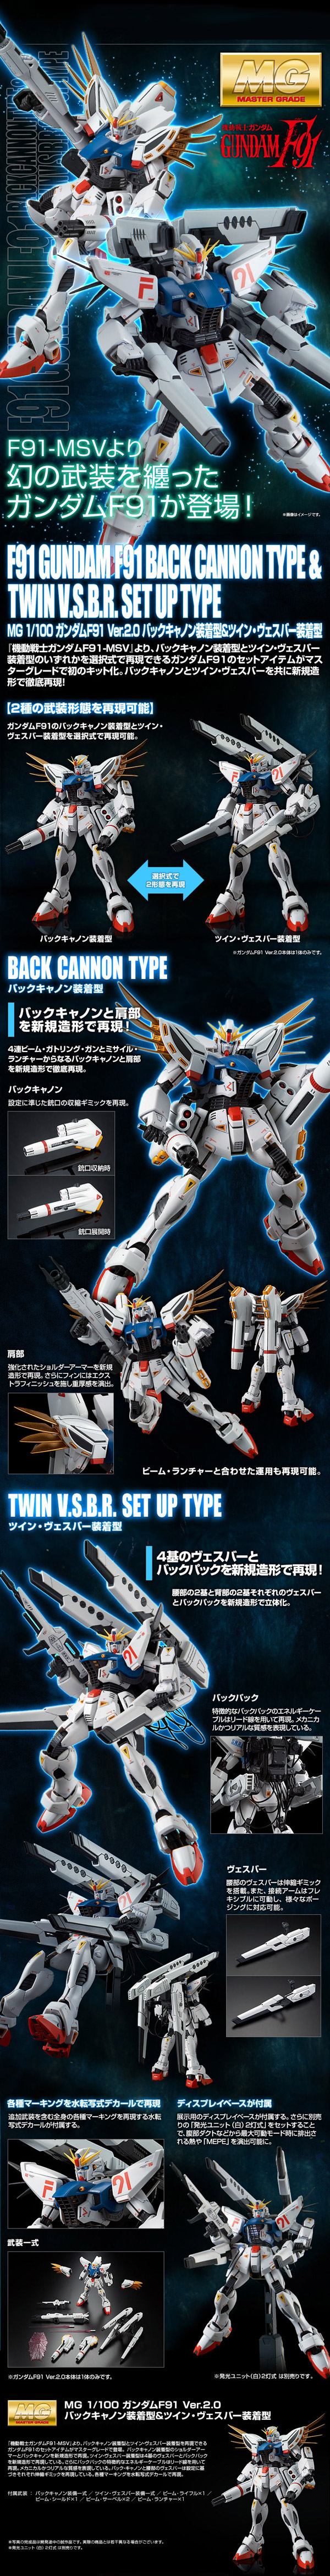 MG Gundam F91 Heavy Weapon Type Details